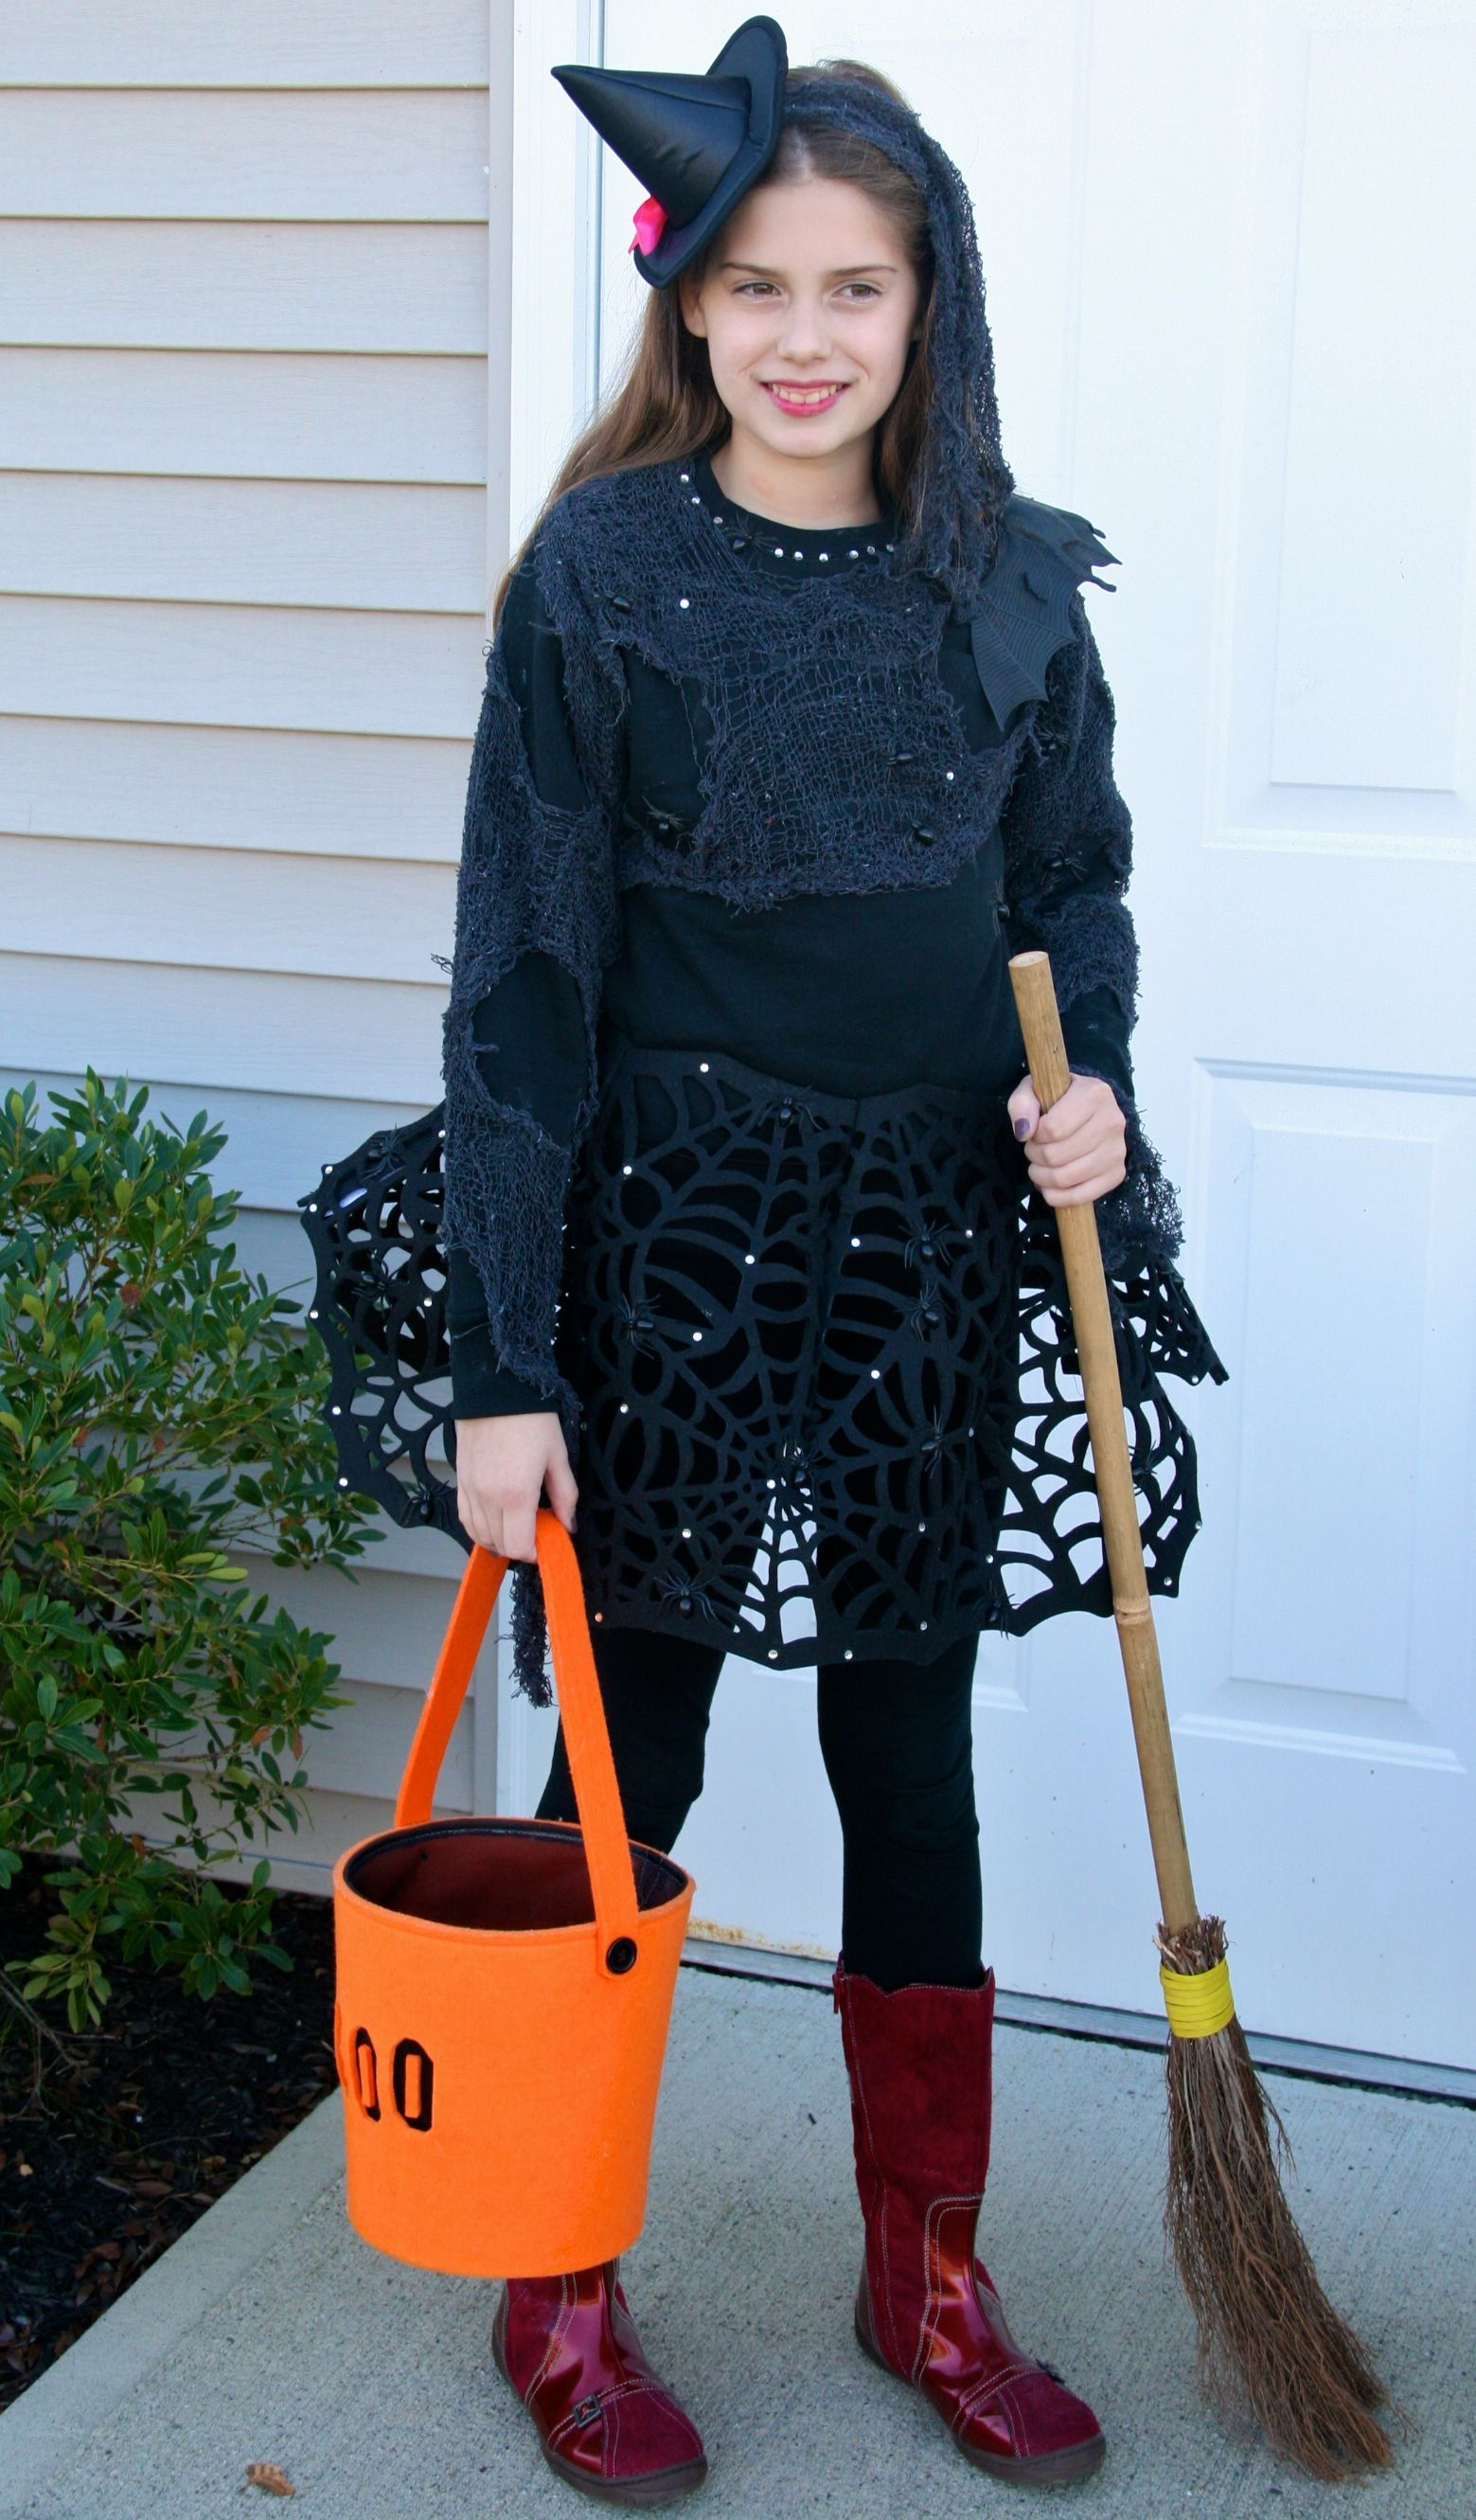 Instructions to DIY witch Halloween costume. I like the